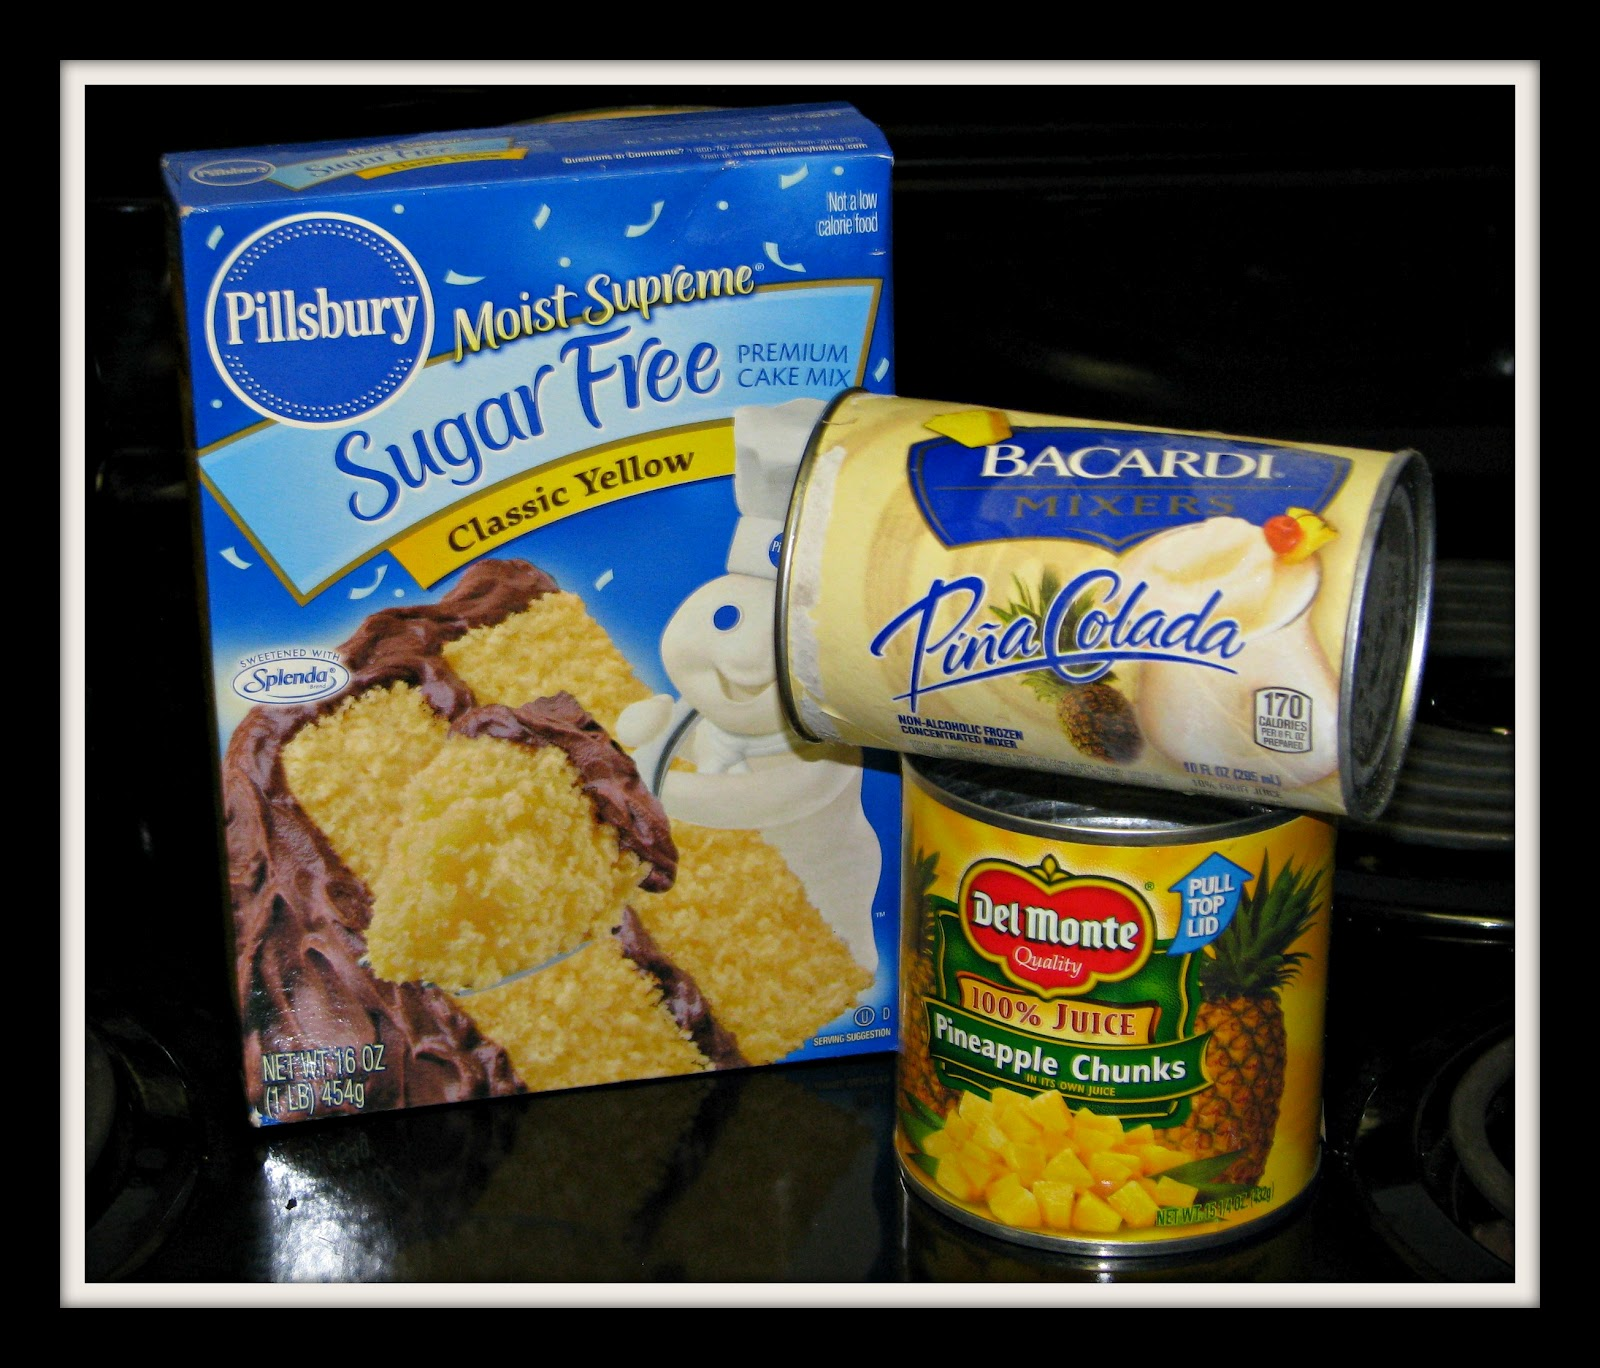 Pillsbury Sugar Free Cake Mix